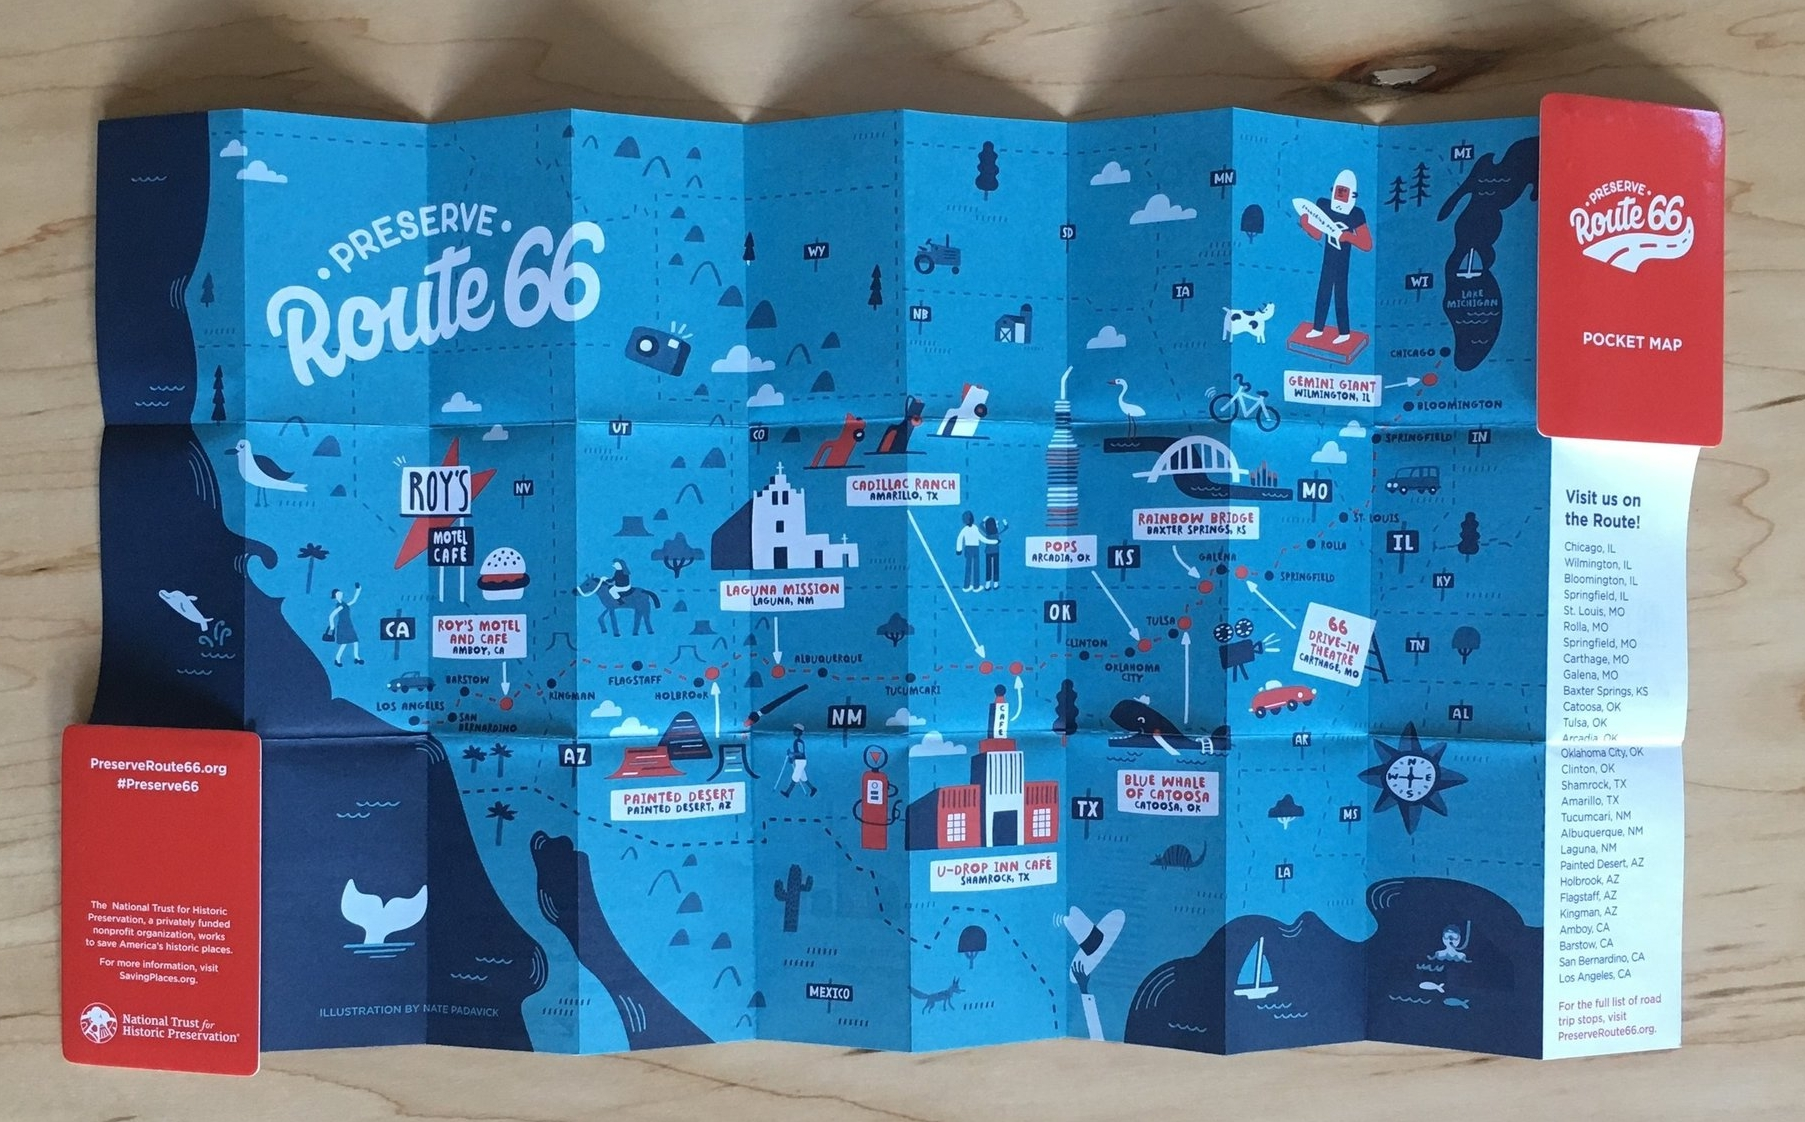 Illustrated map of Route 66 by Nate Padavick.